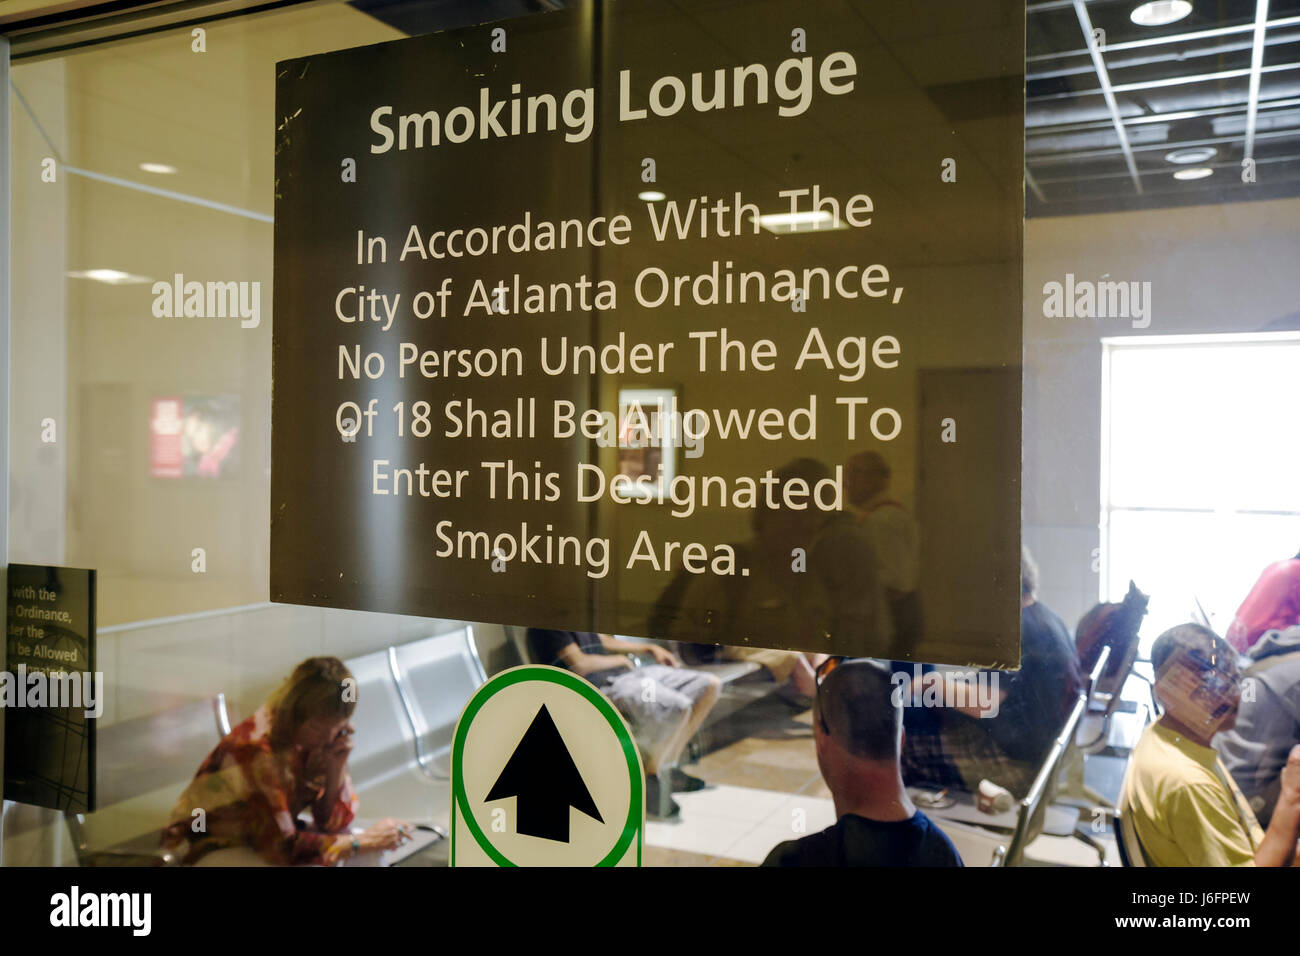 atlanta georgia hartsfield jackson atlanta international airport smoking lounge vice addiction restriction warning stock